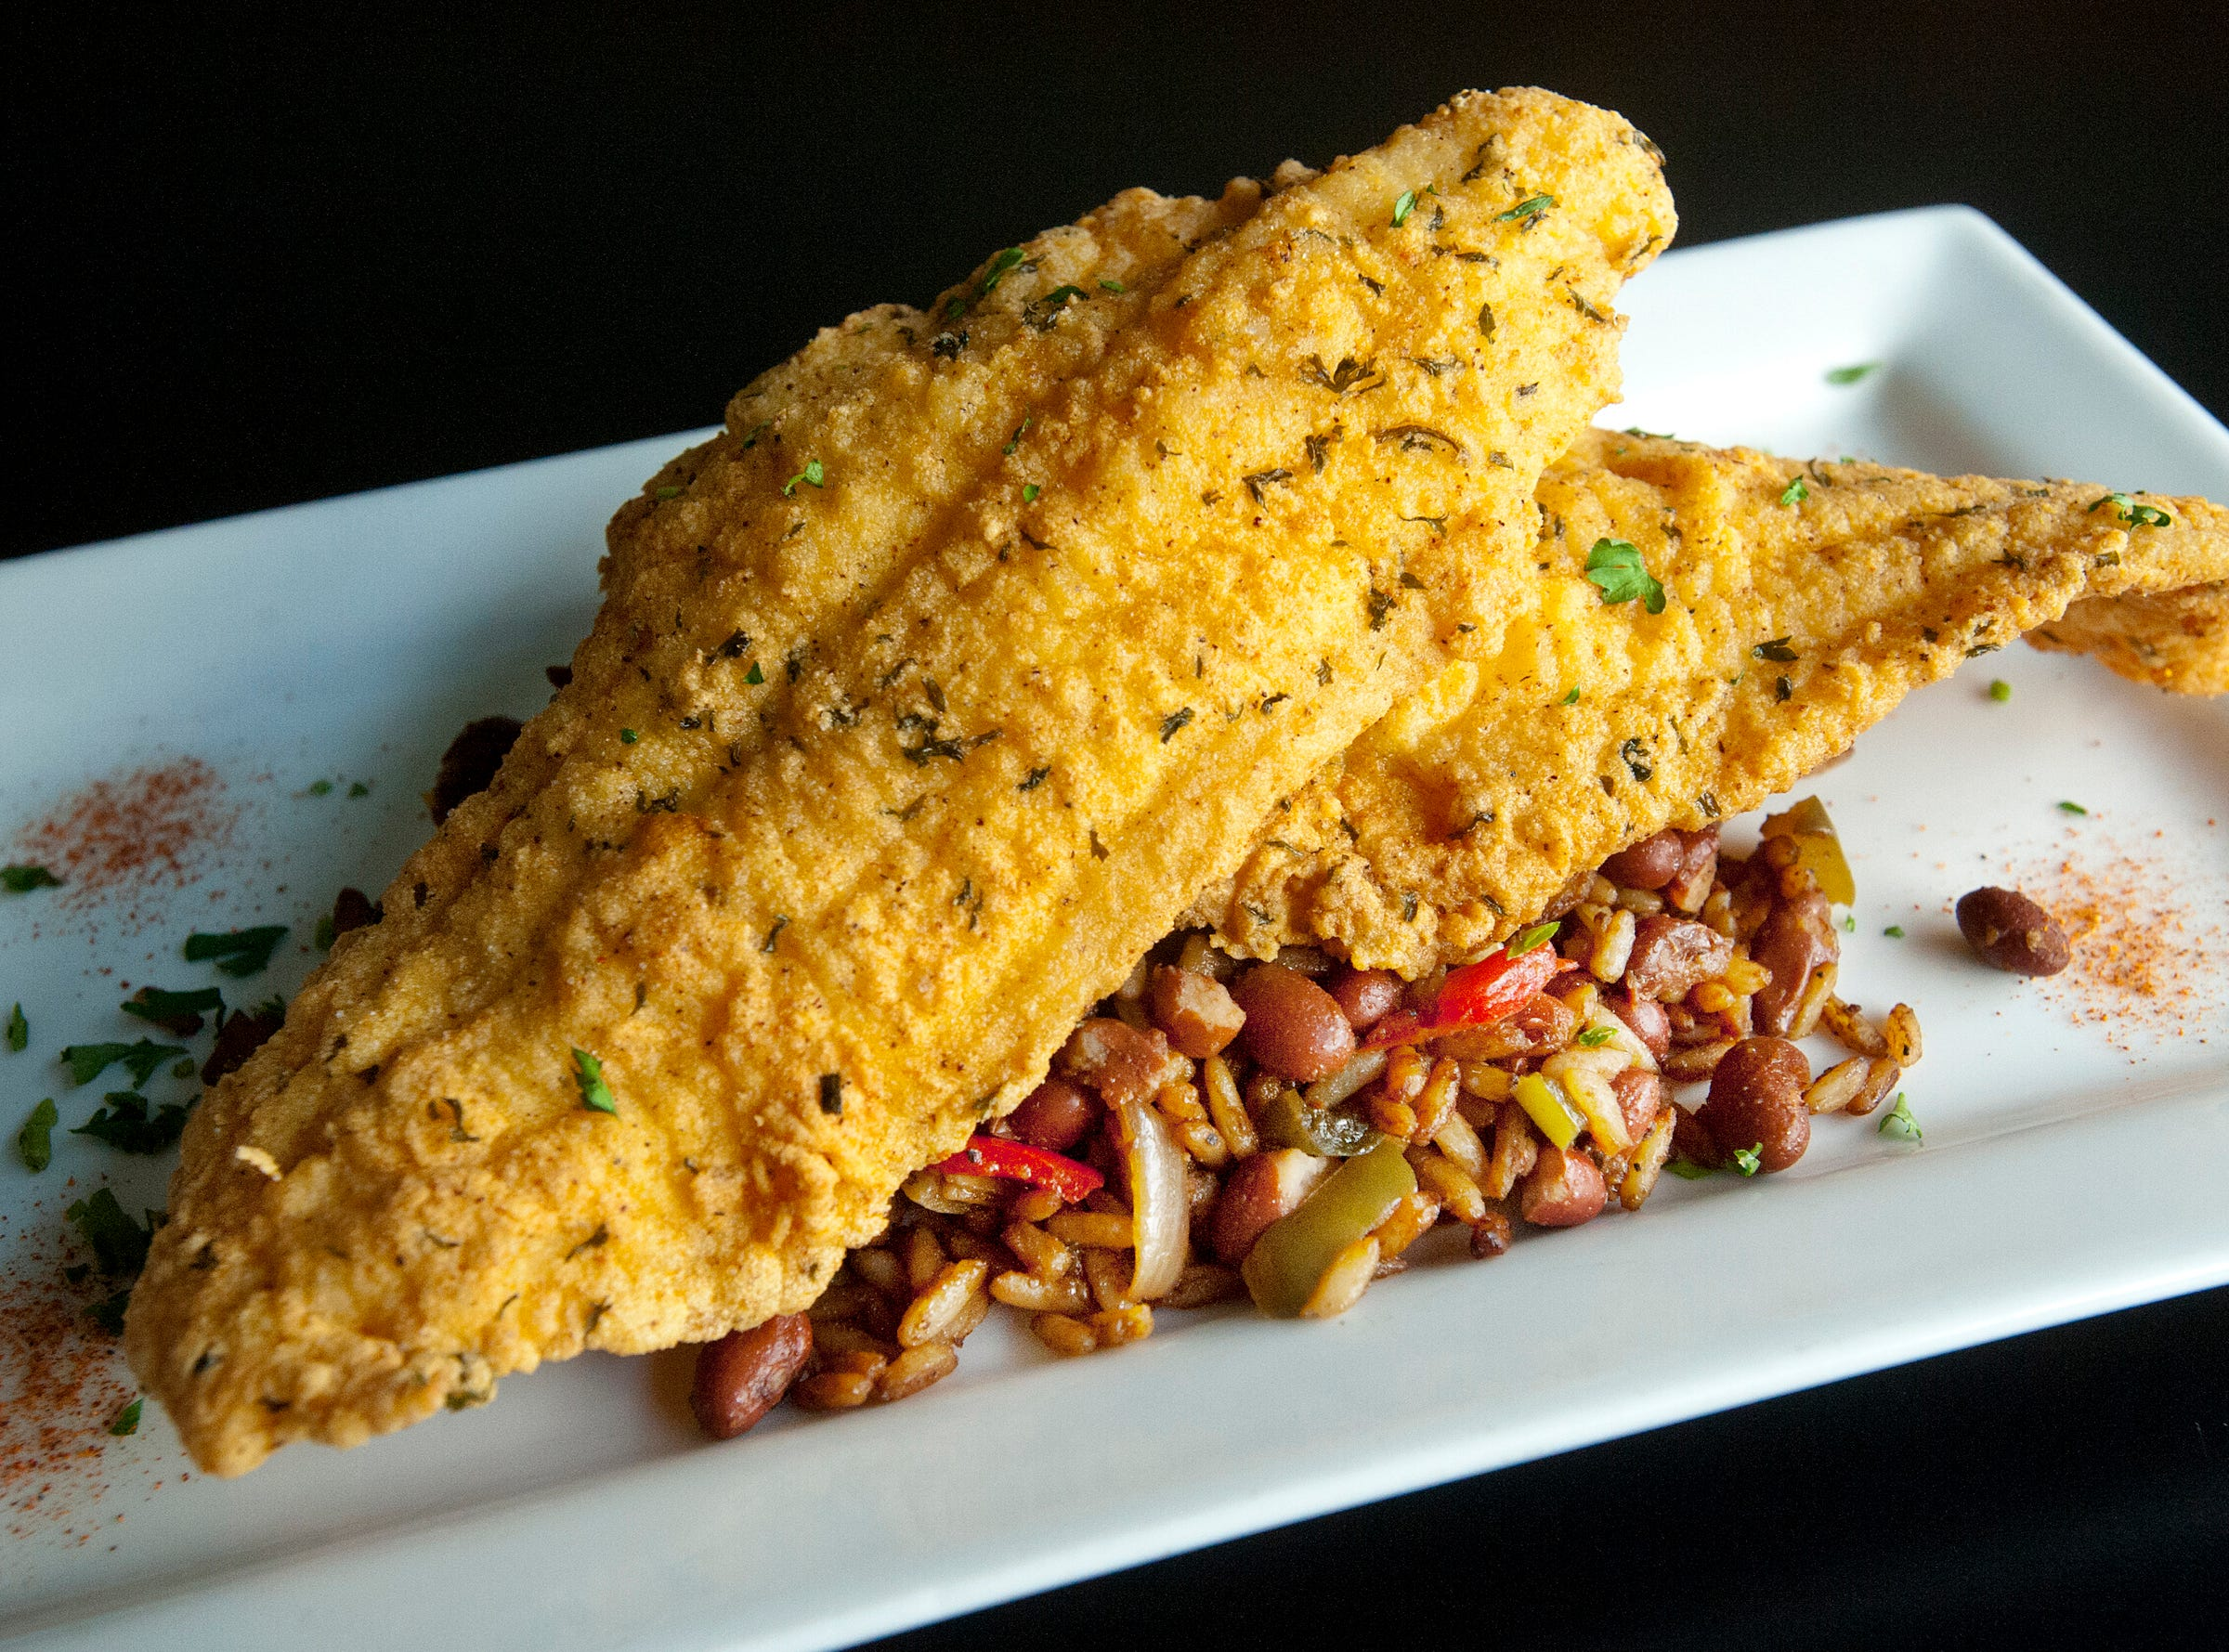 The Flavour Restaurant's fried catfish is made with a southern-style breading served on red beans and rice (other side dishes may be substituted for the beans and rice.) November 08, 2018